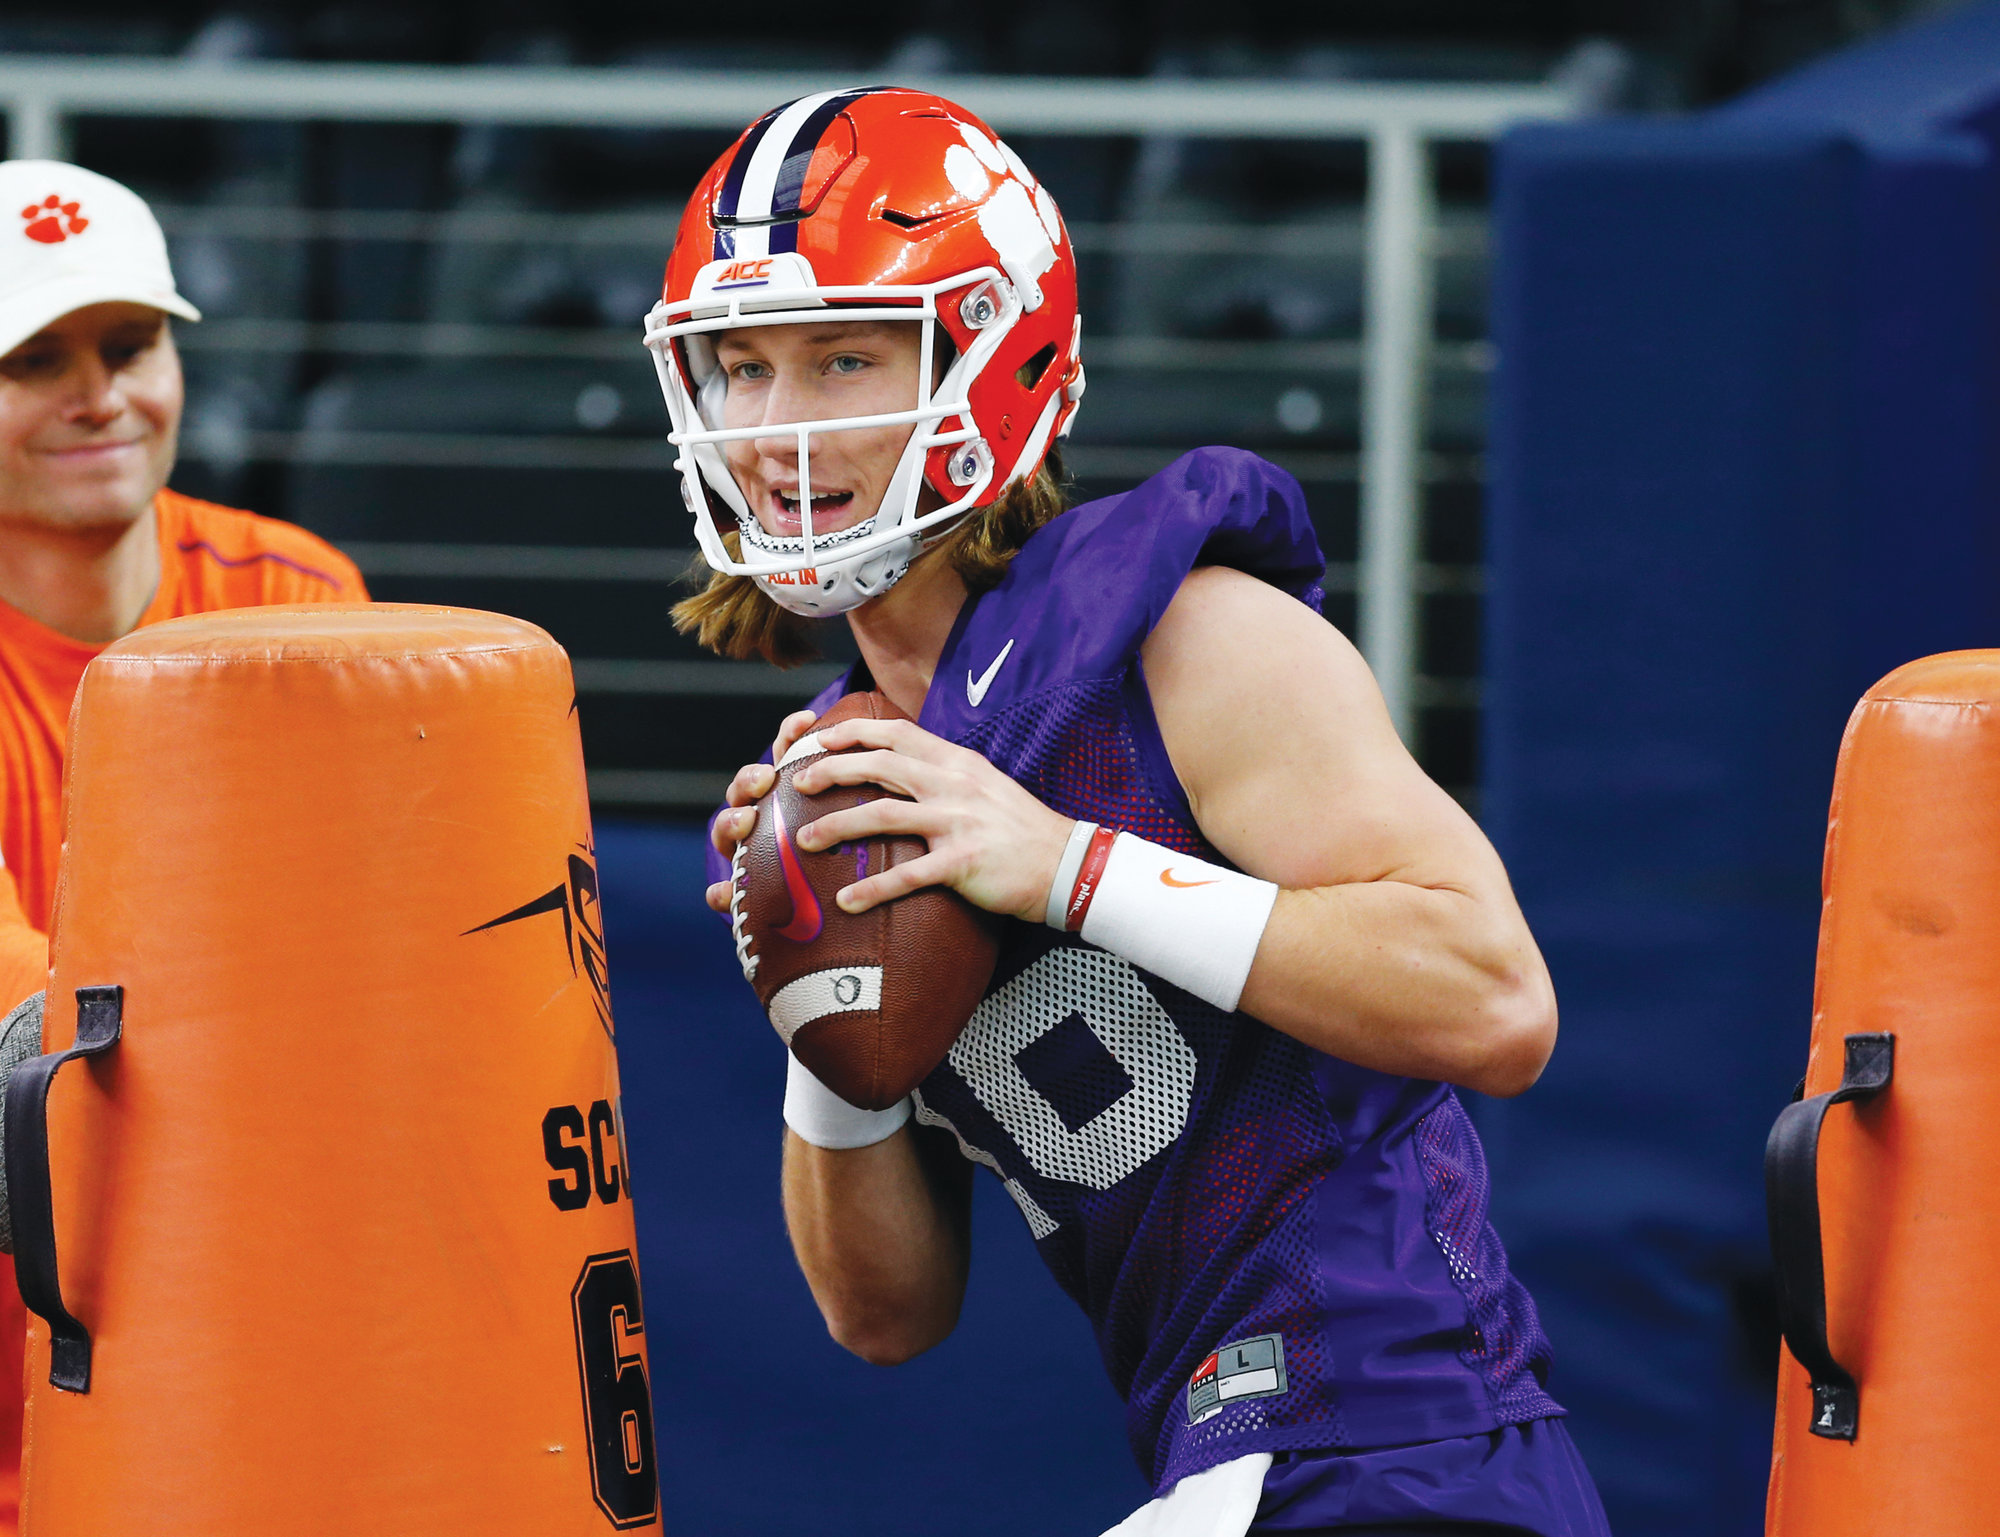 Clemson quarterback Trevor Lawrence (16) sets to pass during team practice at AT&T Stadium in Arlington, Texas, on Monday. Clemson is scheduled to play Notre Dame in the Cotton Bowl College Football Playoff semifinal on Saturday.